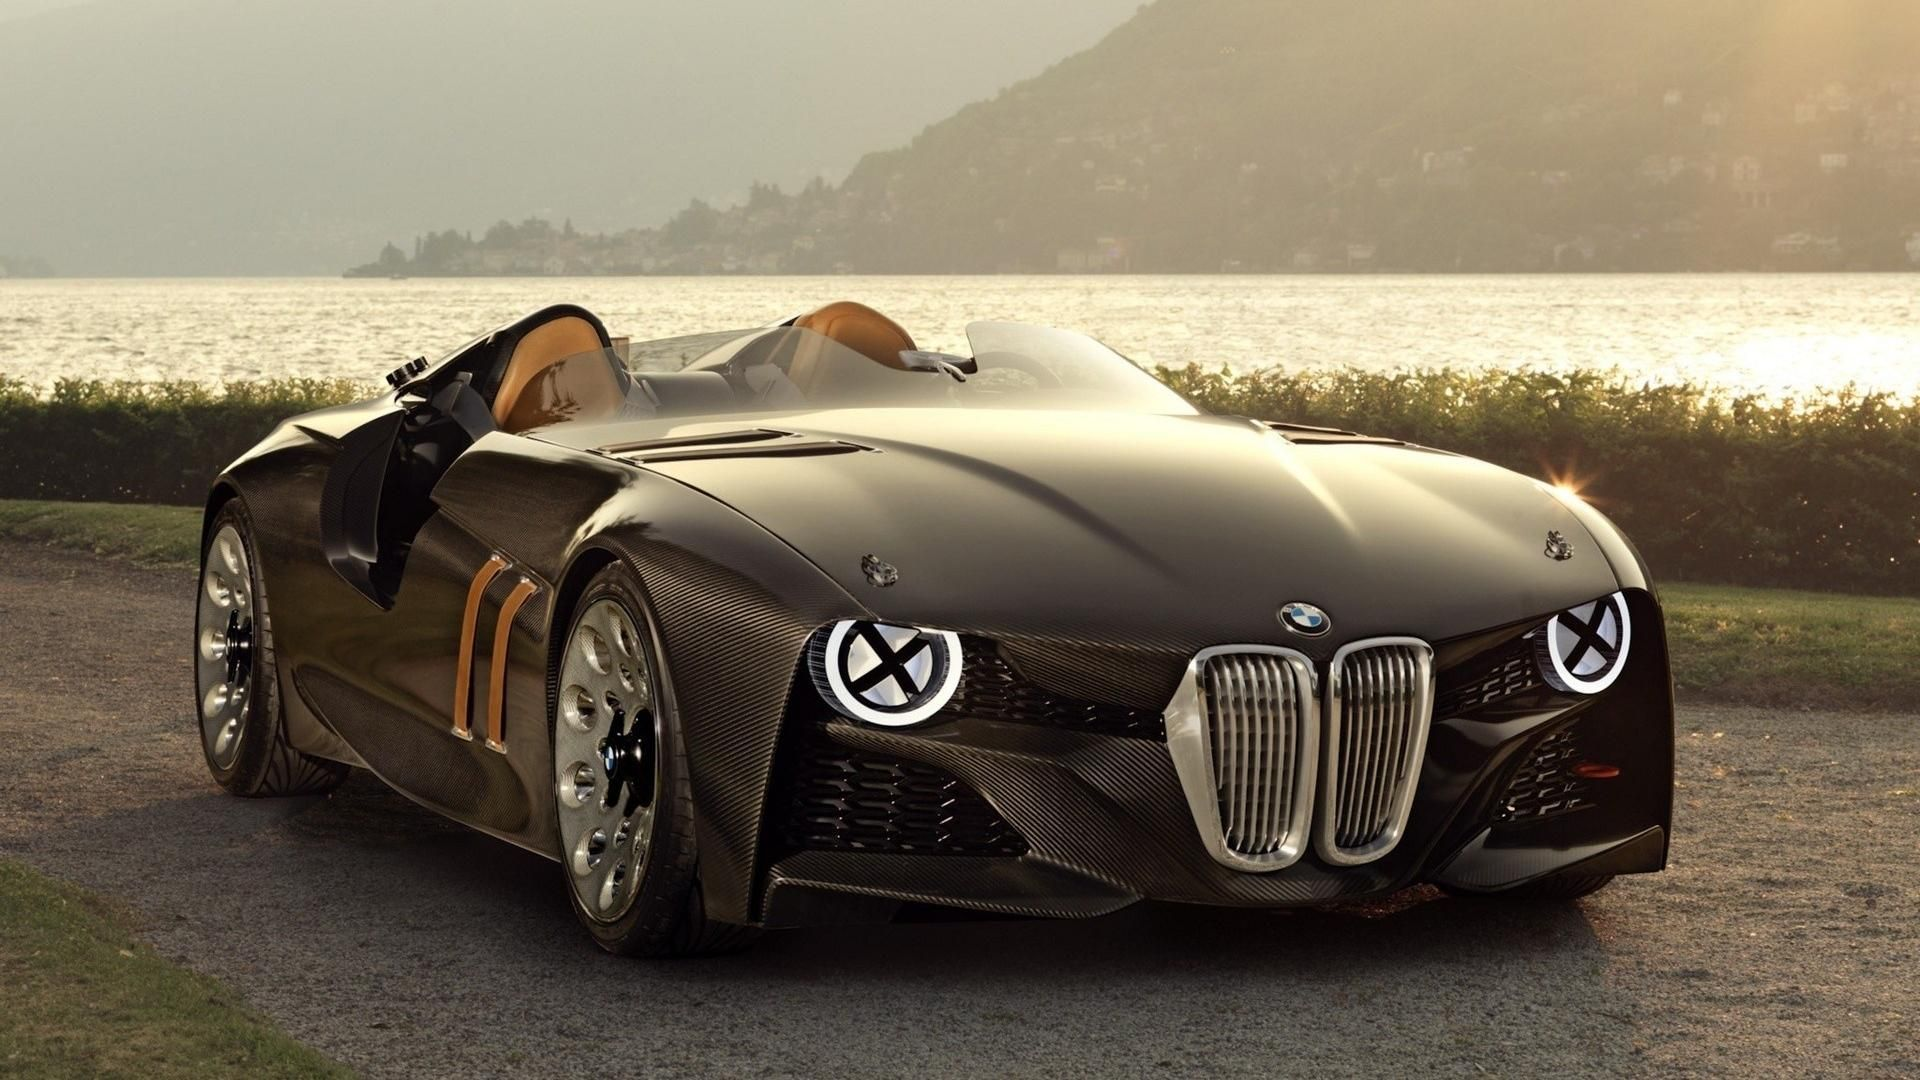 Bmw Cars Wallpapers Hd Viewing Gallery 1920x1080px Custom Car Wallpapers 244037